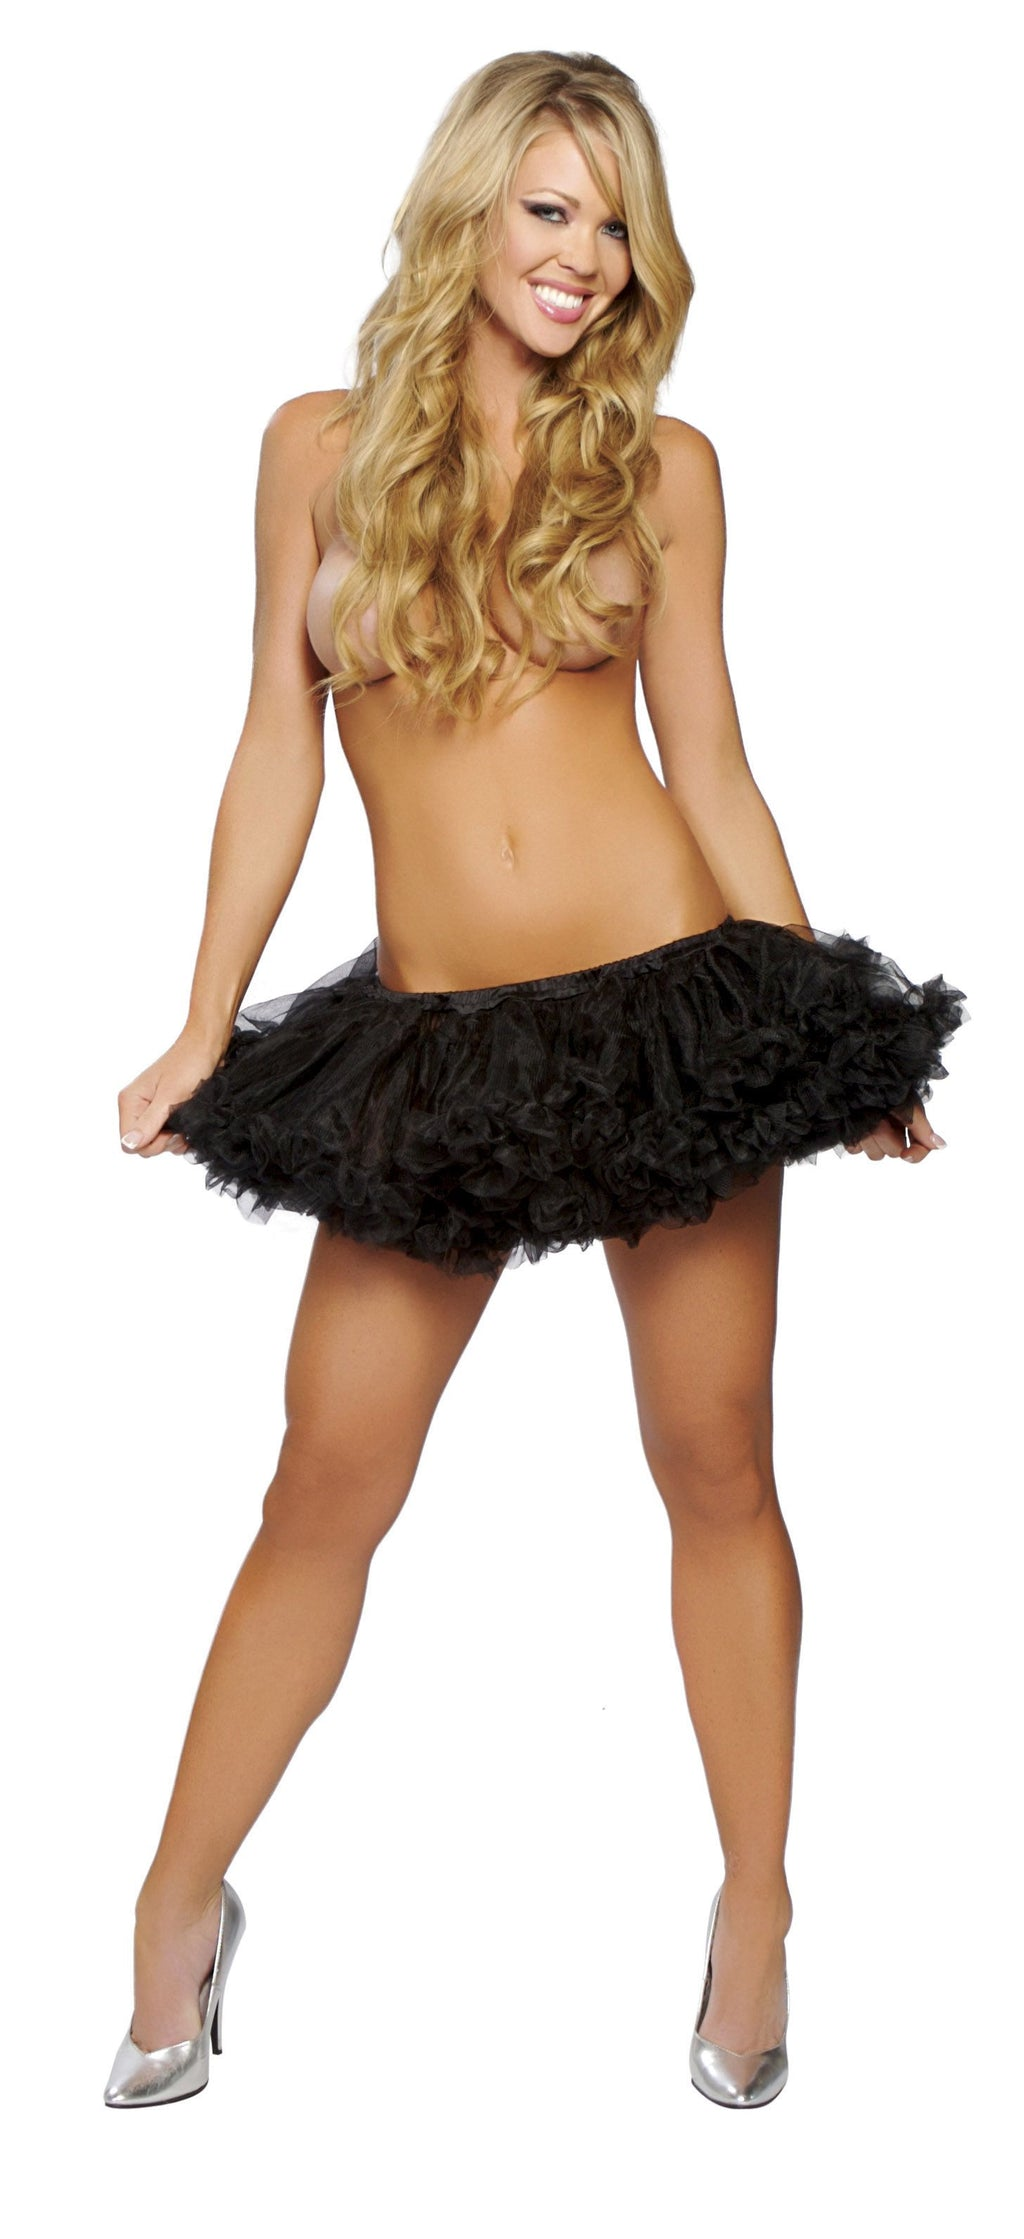 Adult-Women's-Polyester-Tutu-Petticoat-Party-Costume-Accessory---Multiple-Colors